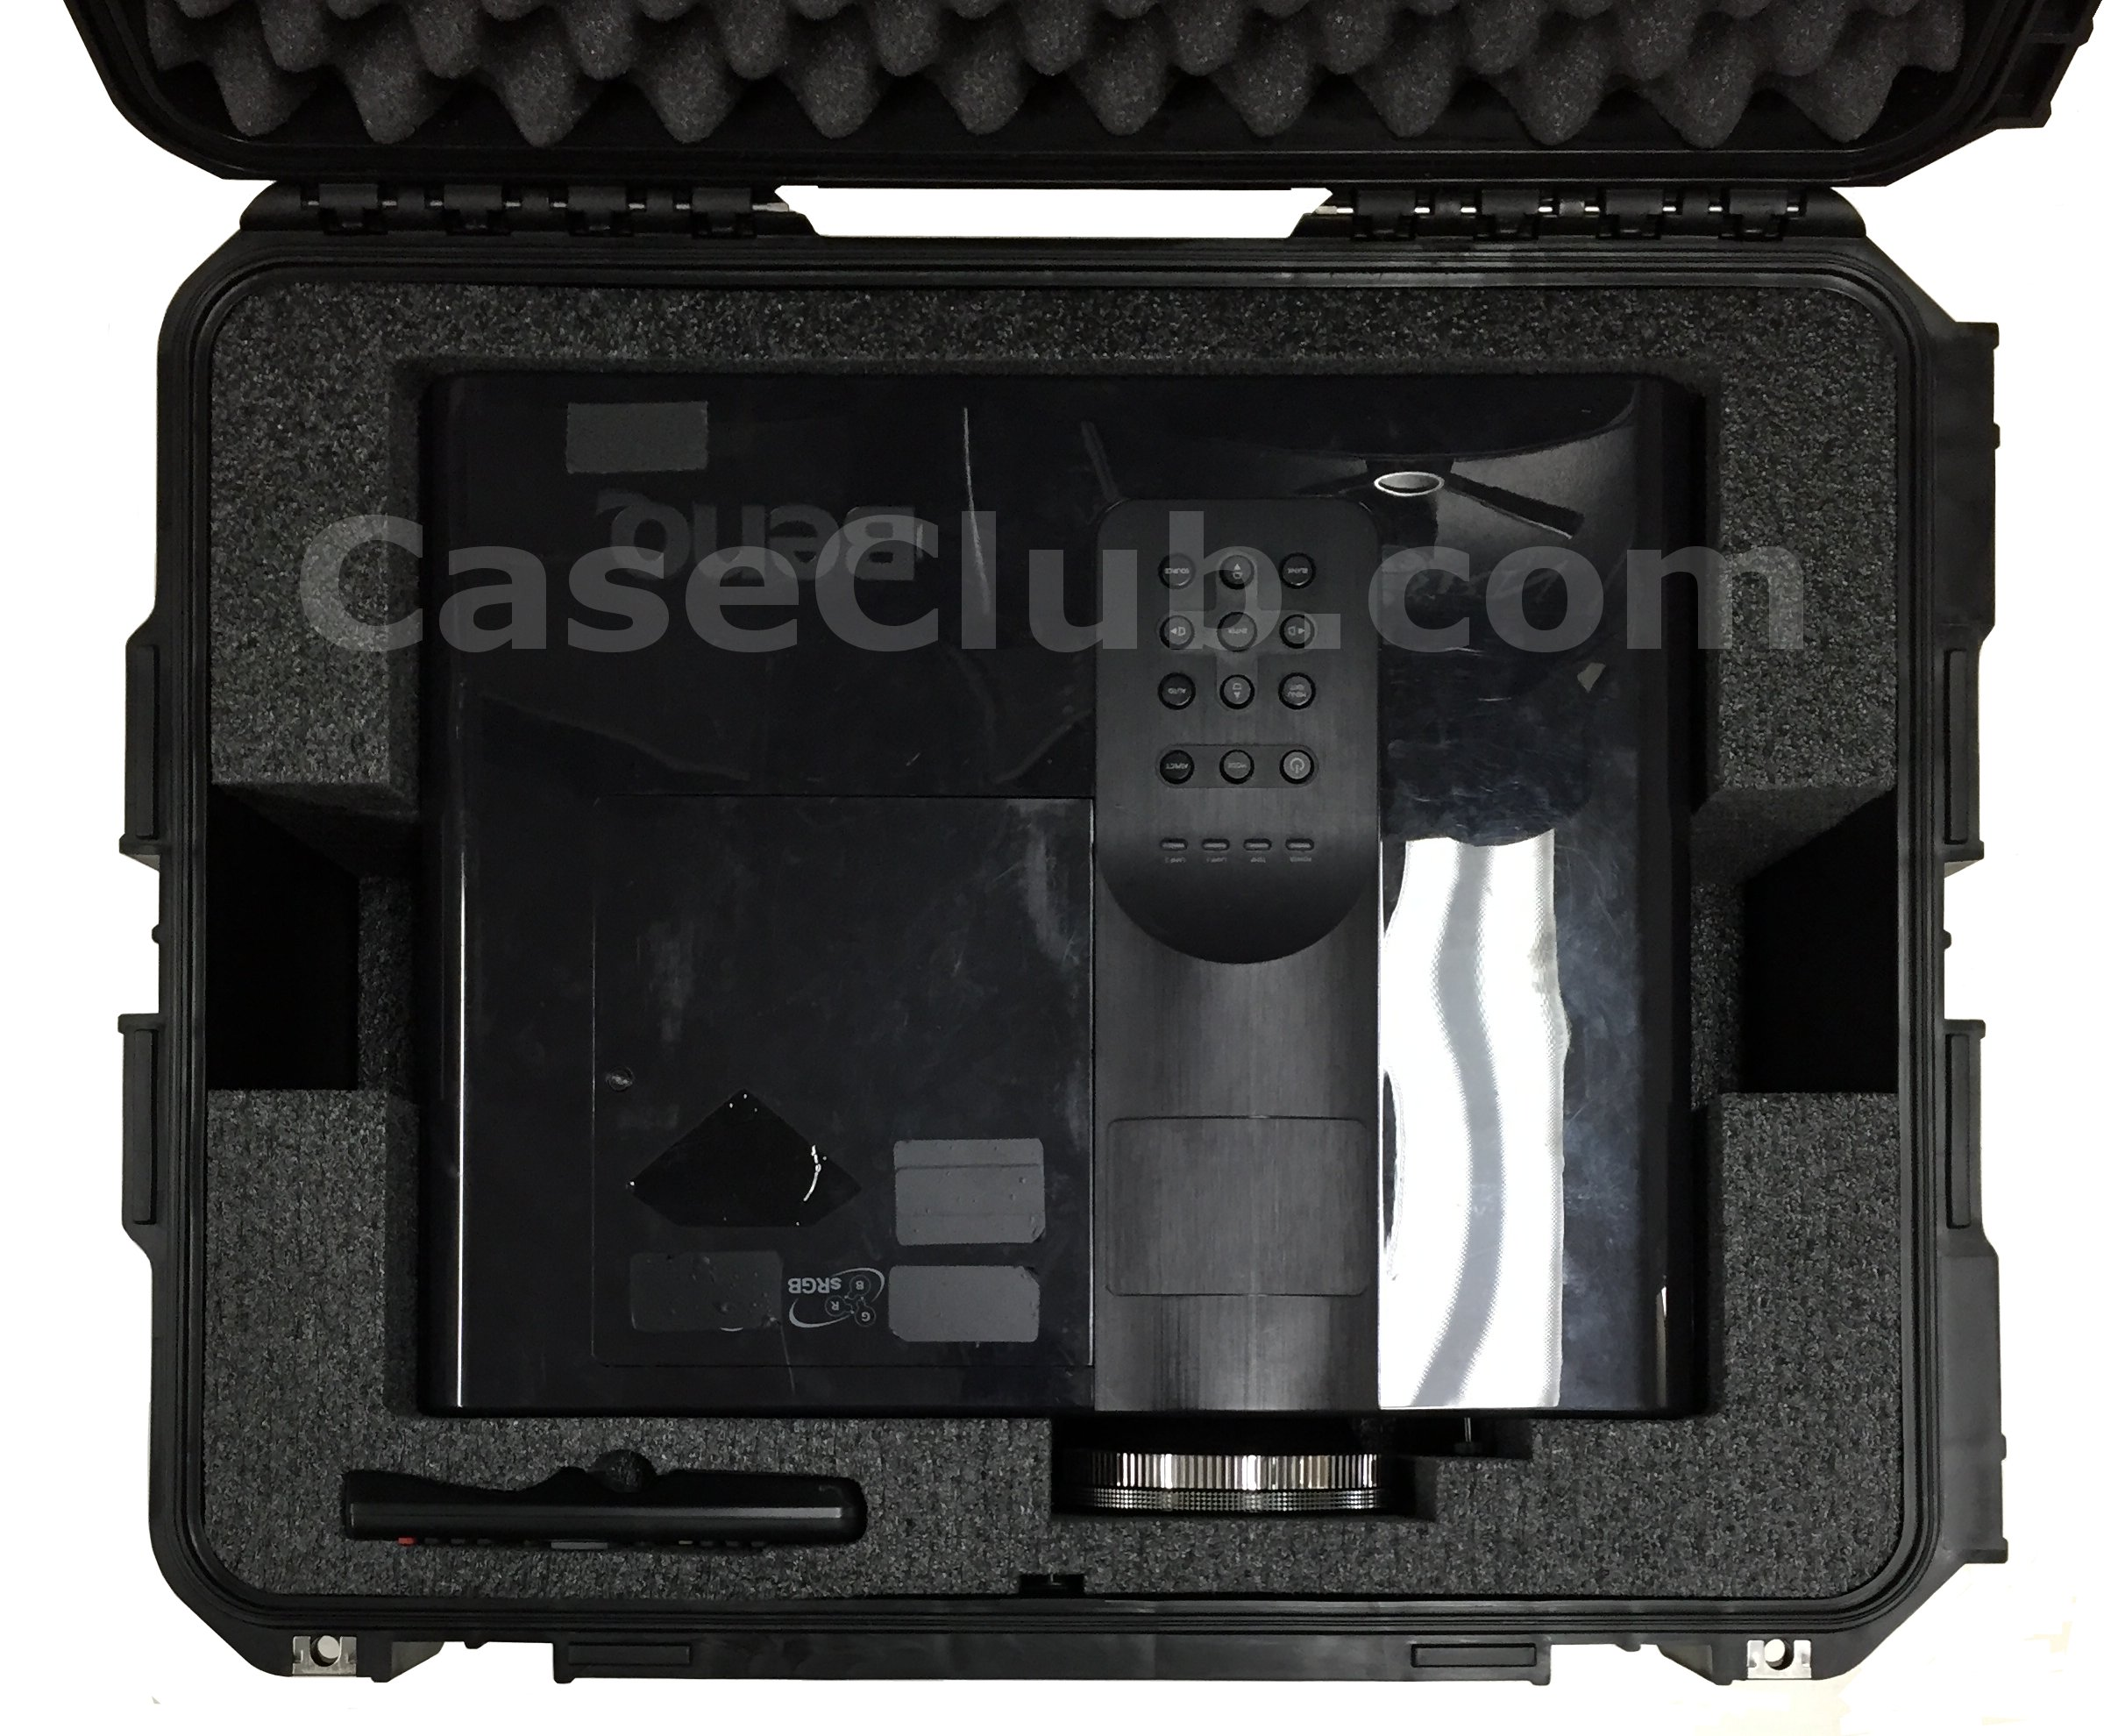 SKB 3I-2217-10 Case Custom Foam Example: Benq SH960 DLP Projector Case